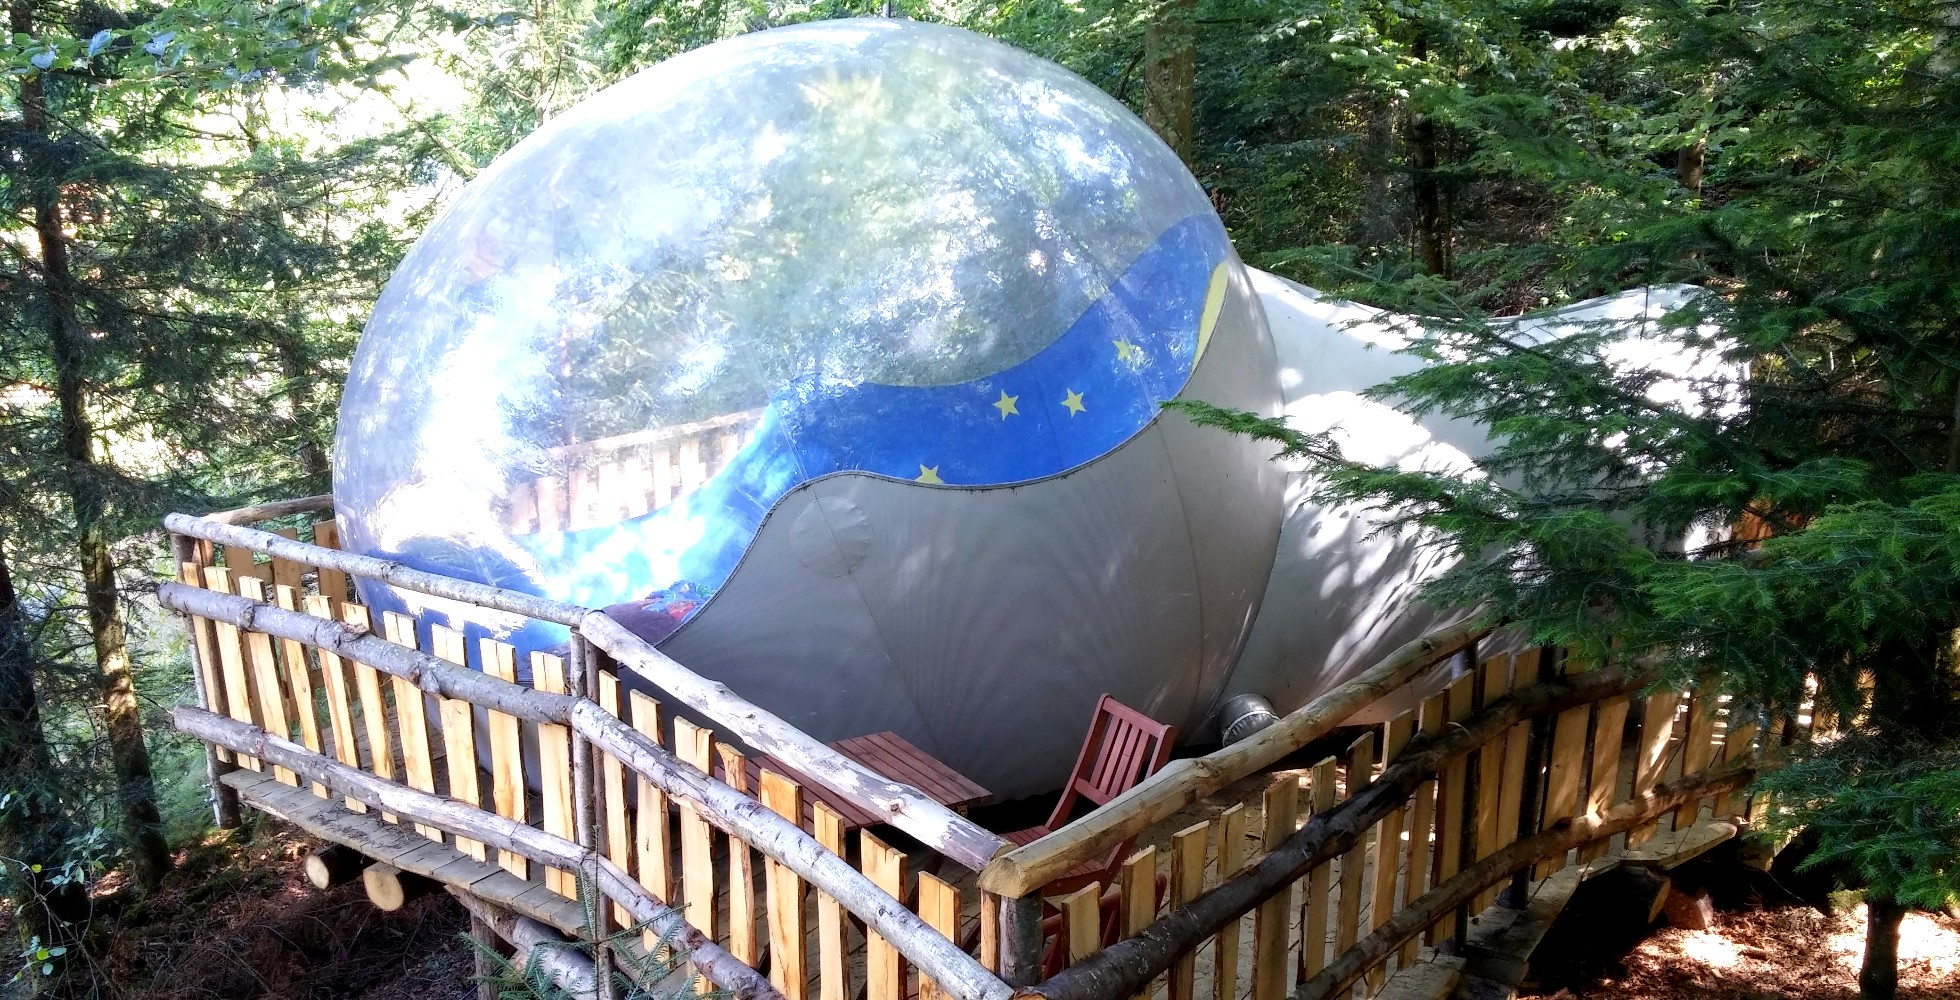 Sleep in a transparent bubble in the middle of nature ! & The bubble tent - Camping du Mettey